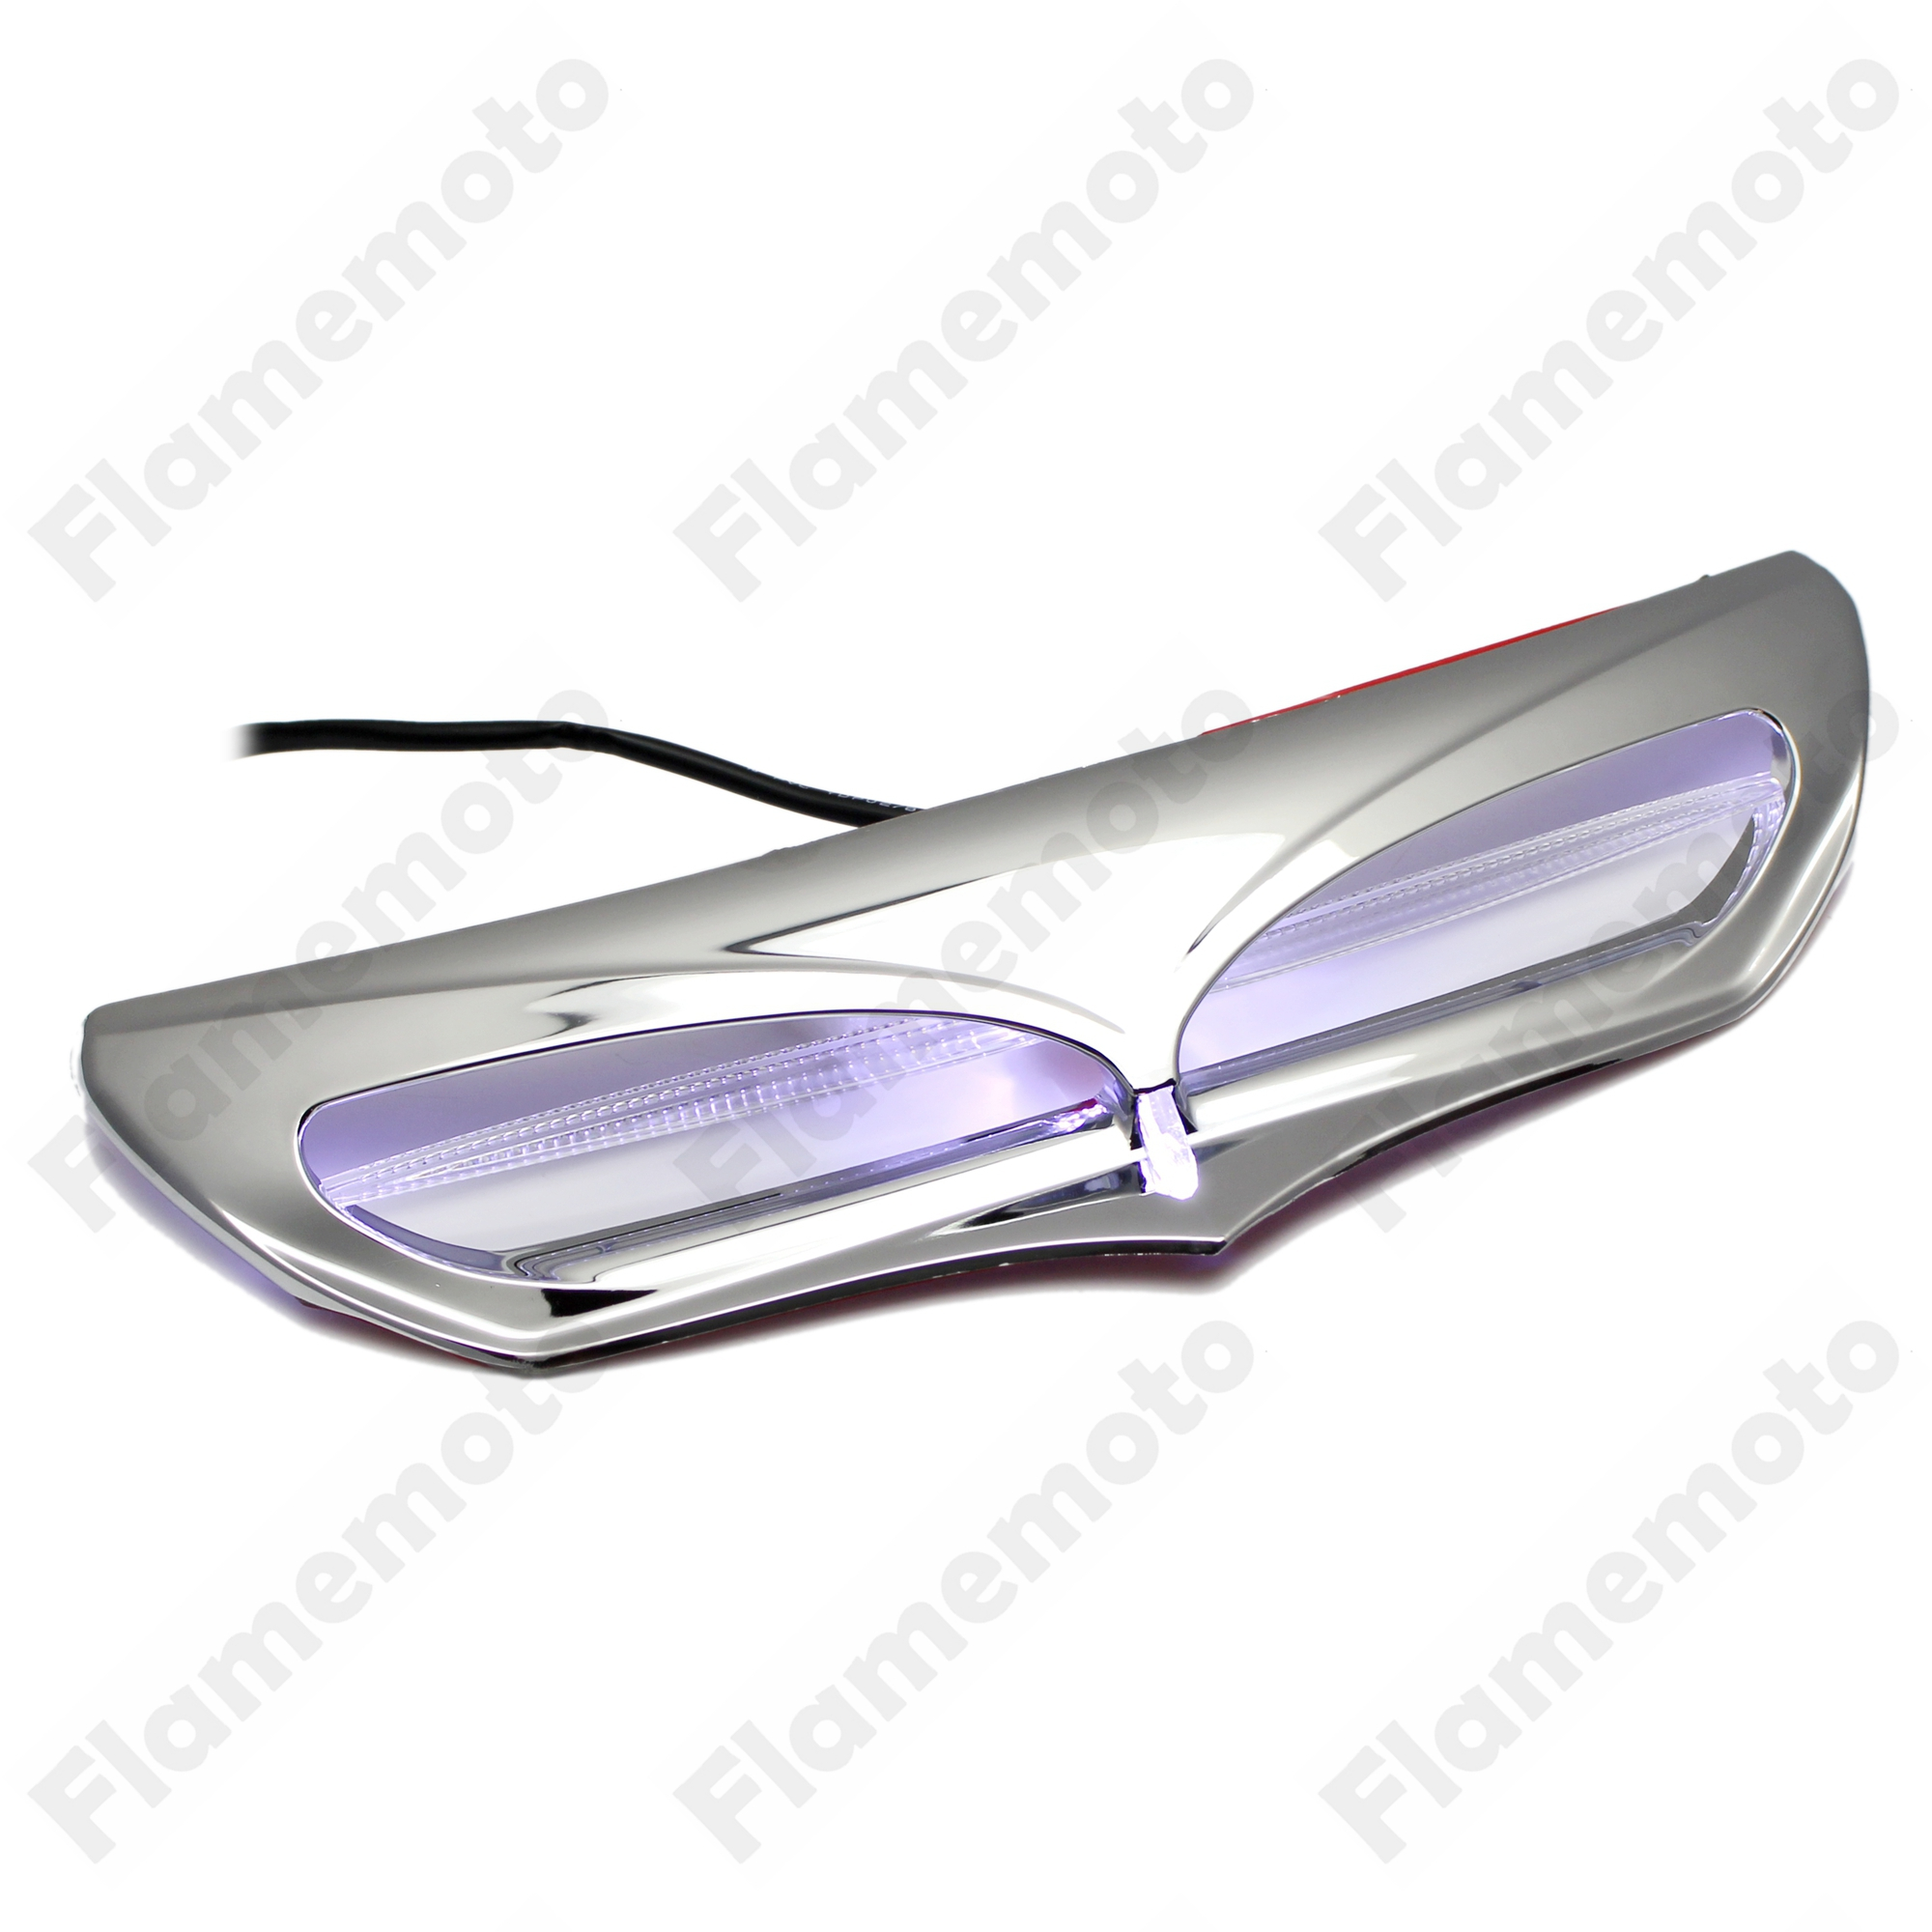 Motorcycle Chrome Batwing Fairing Vent Trim with LED Accent Lights Cover For Harley Touring Road King Street Electra Glide